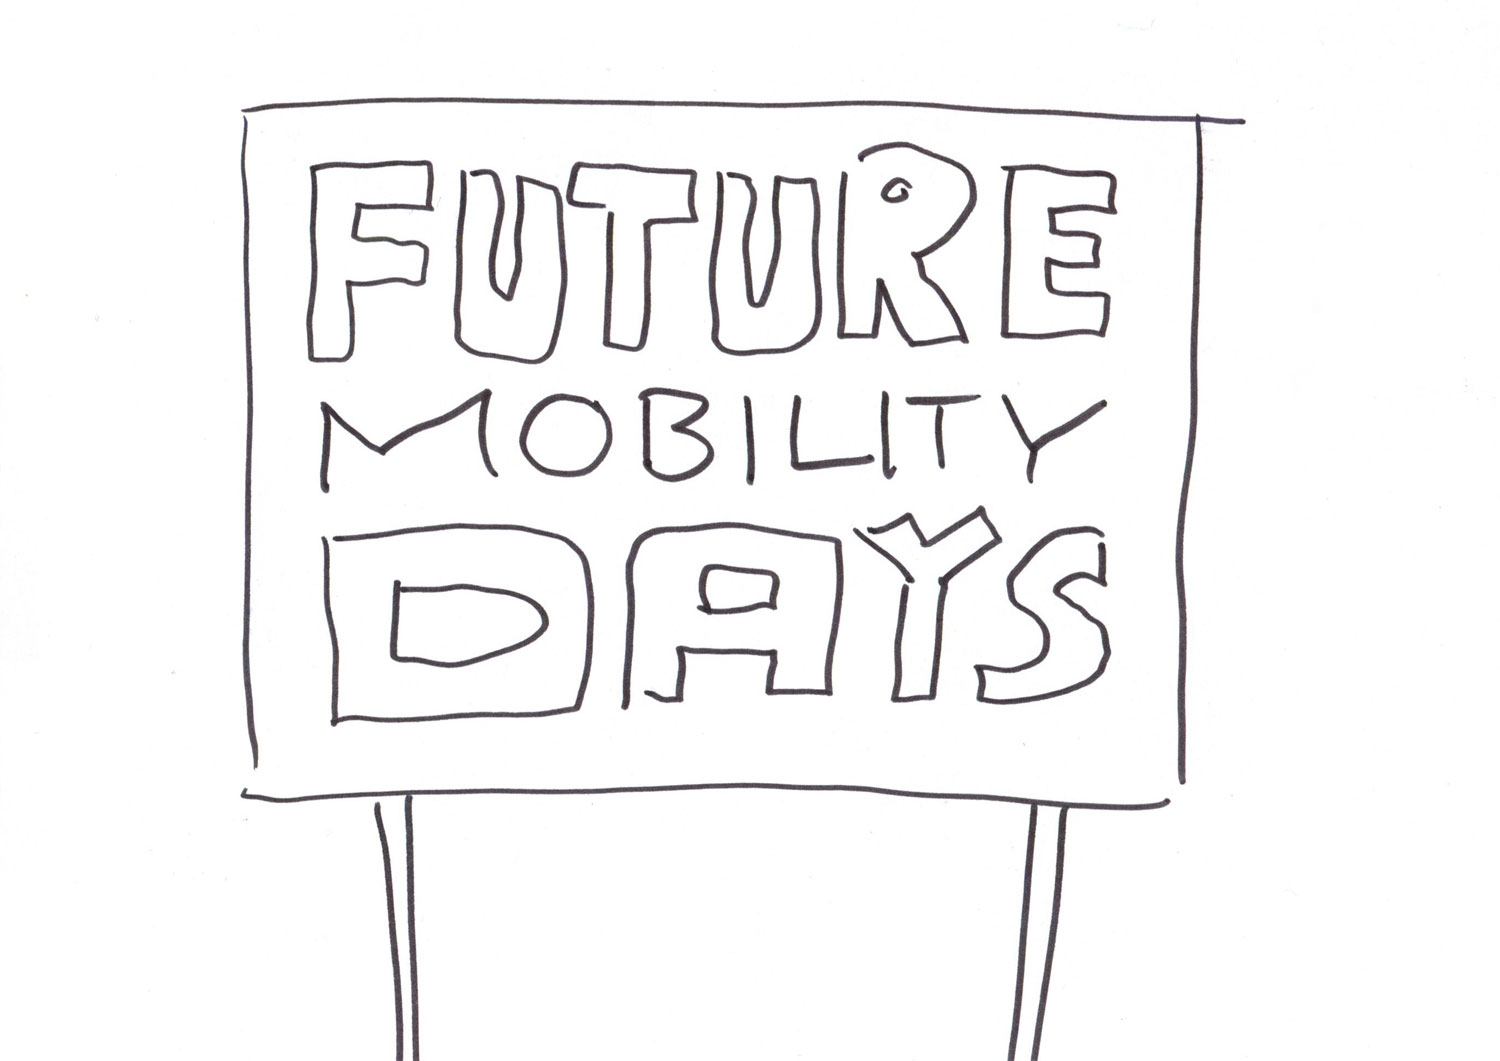 graphic recording future mobility days